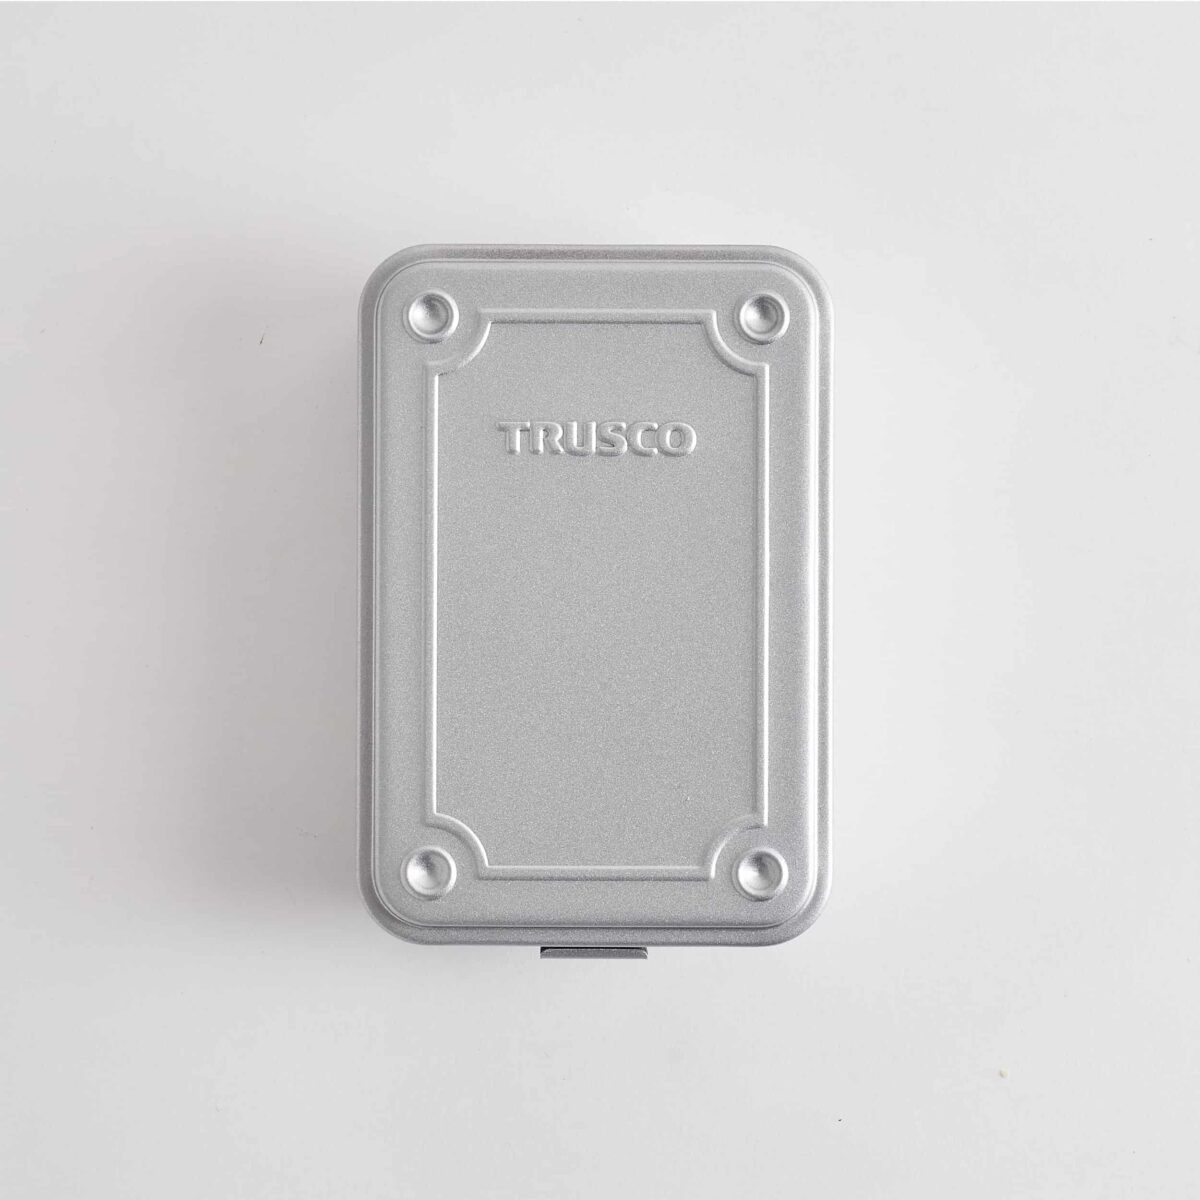 Trusco Component Box Small – Another-Country-Photo Credit Yeshen Venema -web ready-21.11.185360